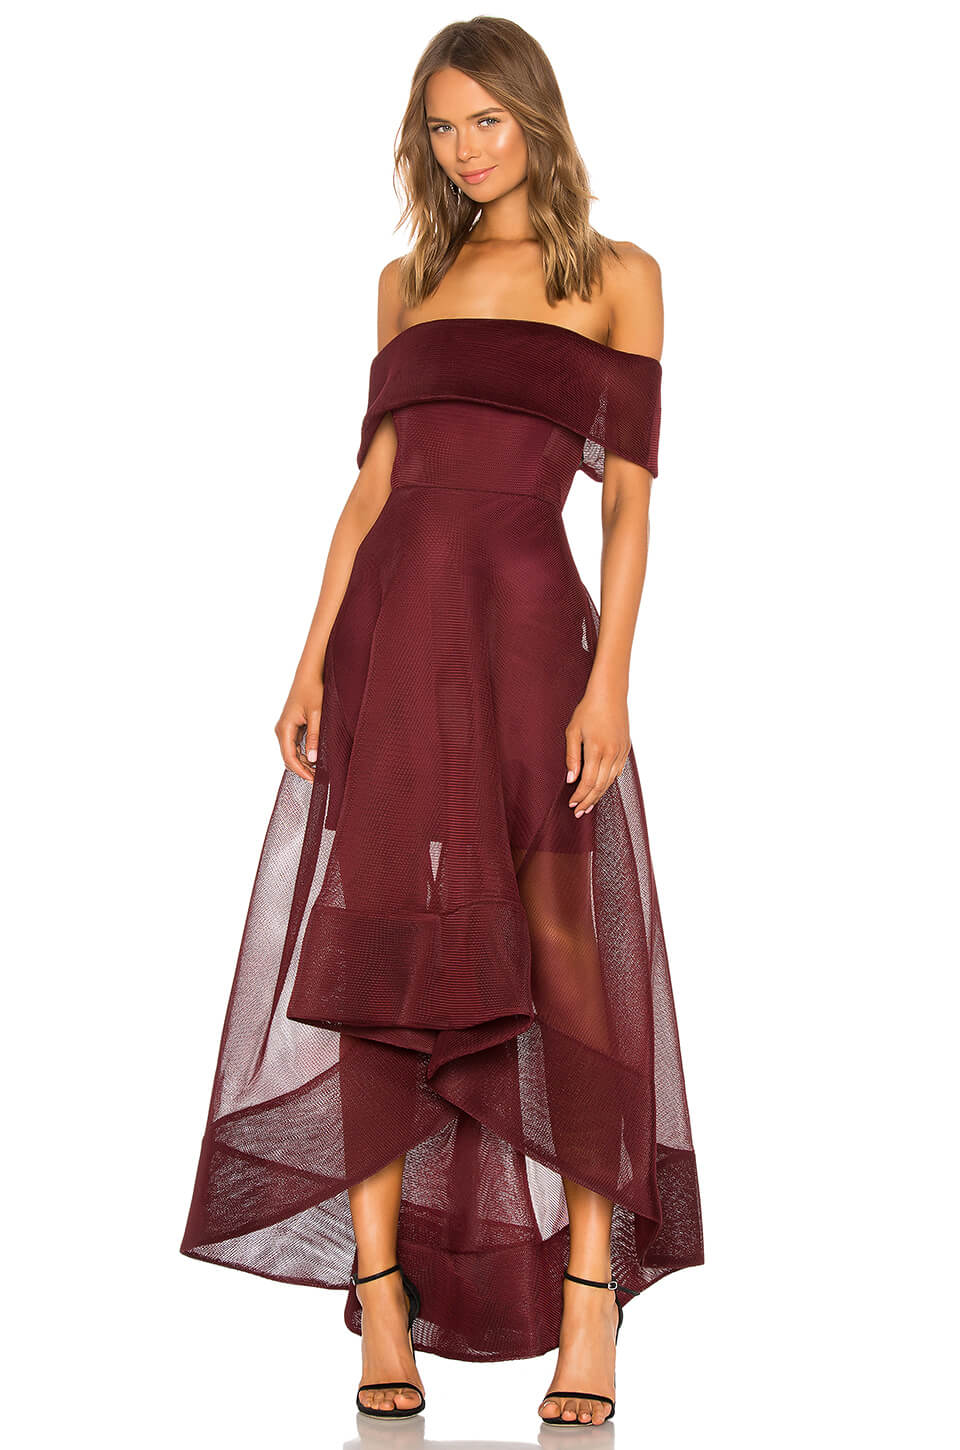 revolve-bronx-and-banco-tulip-gown-dress-dresses-burgundy.jpg